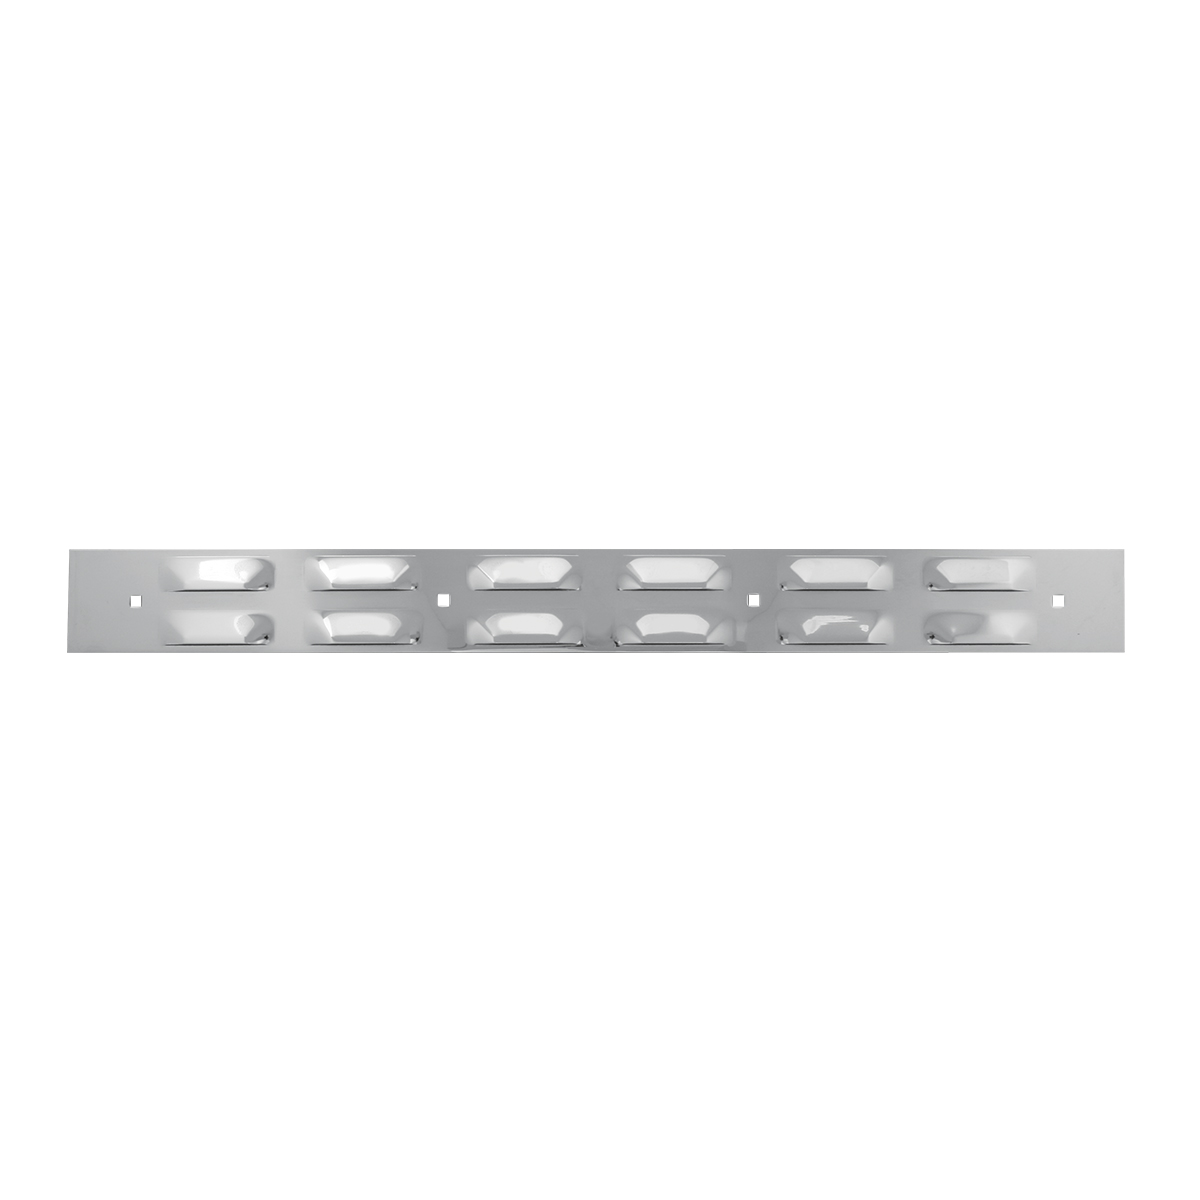 Top Mud Flap Louver Style Plate with 4 Holes